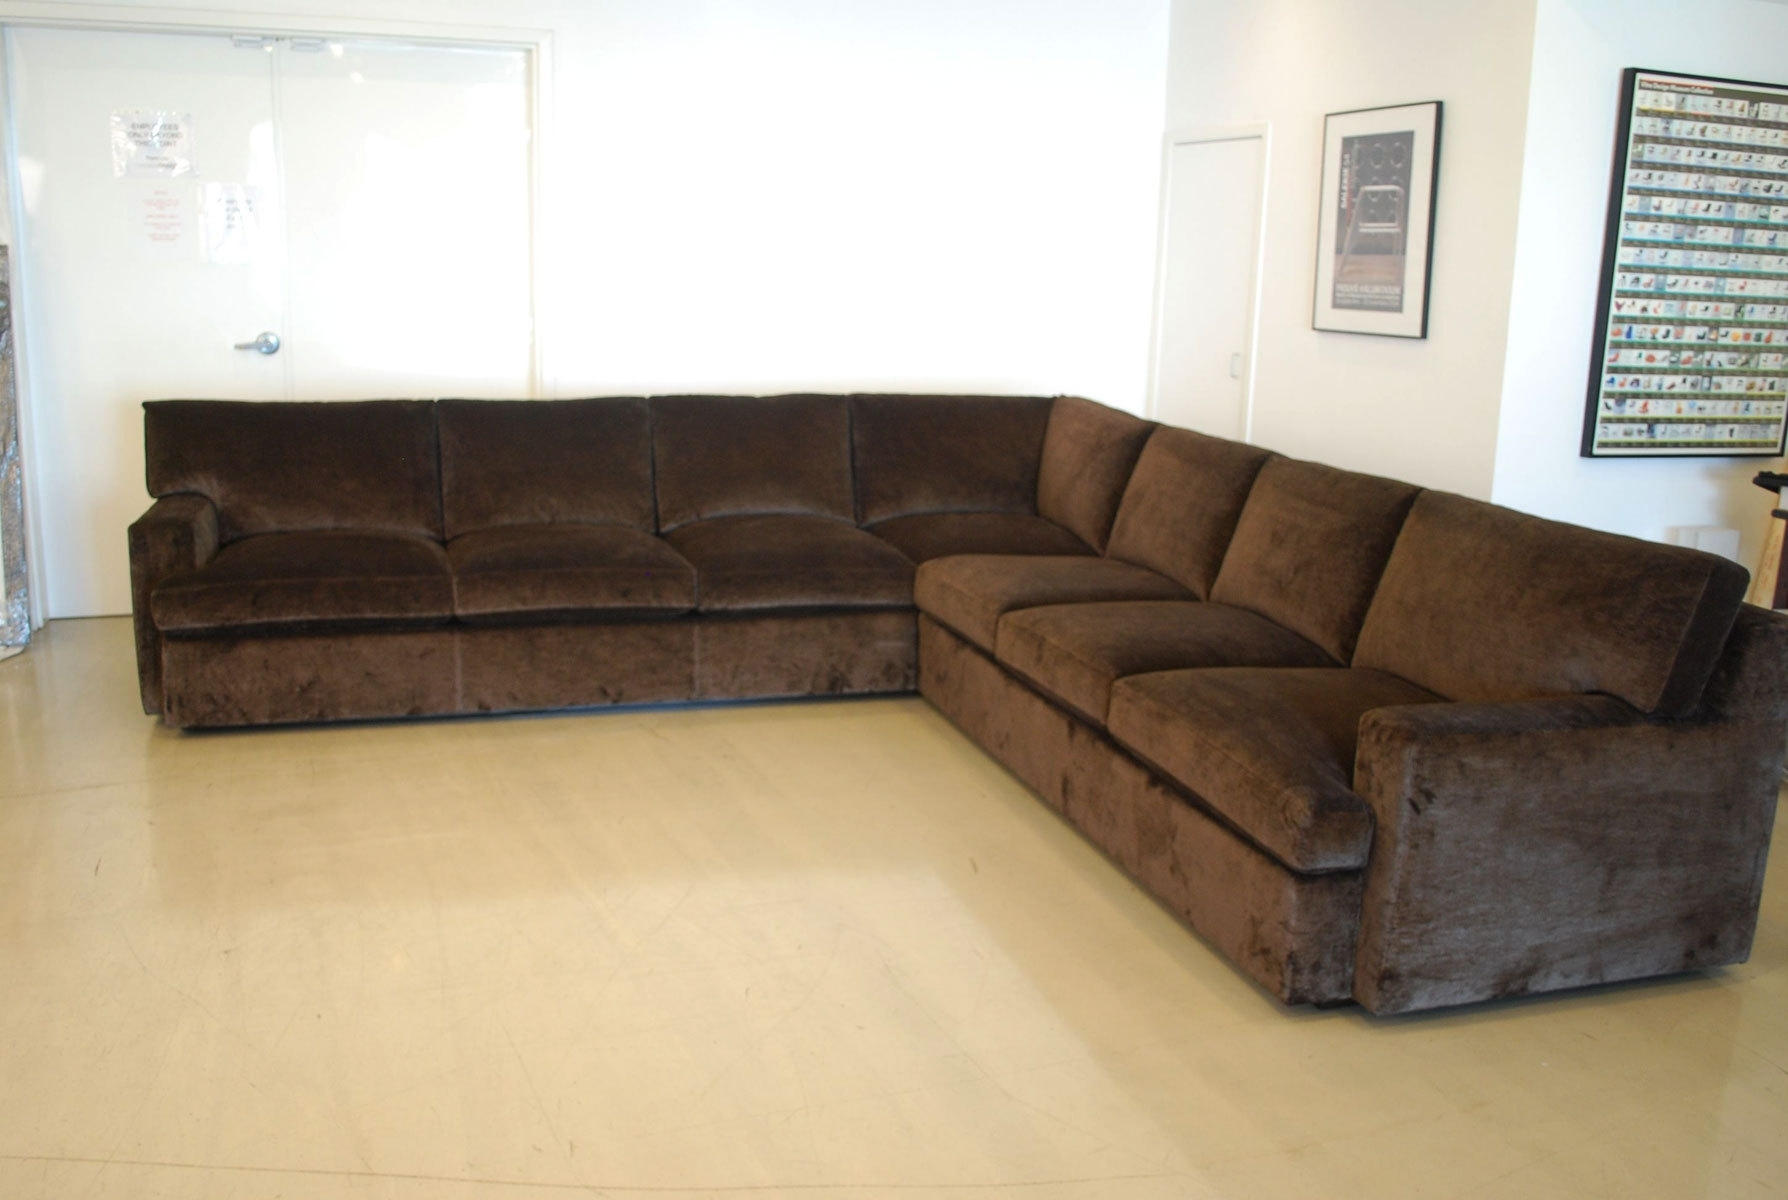 Amusing Large L Shaped Sectional Sofas 99 On The Brick Sofa Bed throughout Sectional Sofas at Brick (Image 1 of 15)